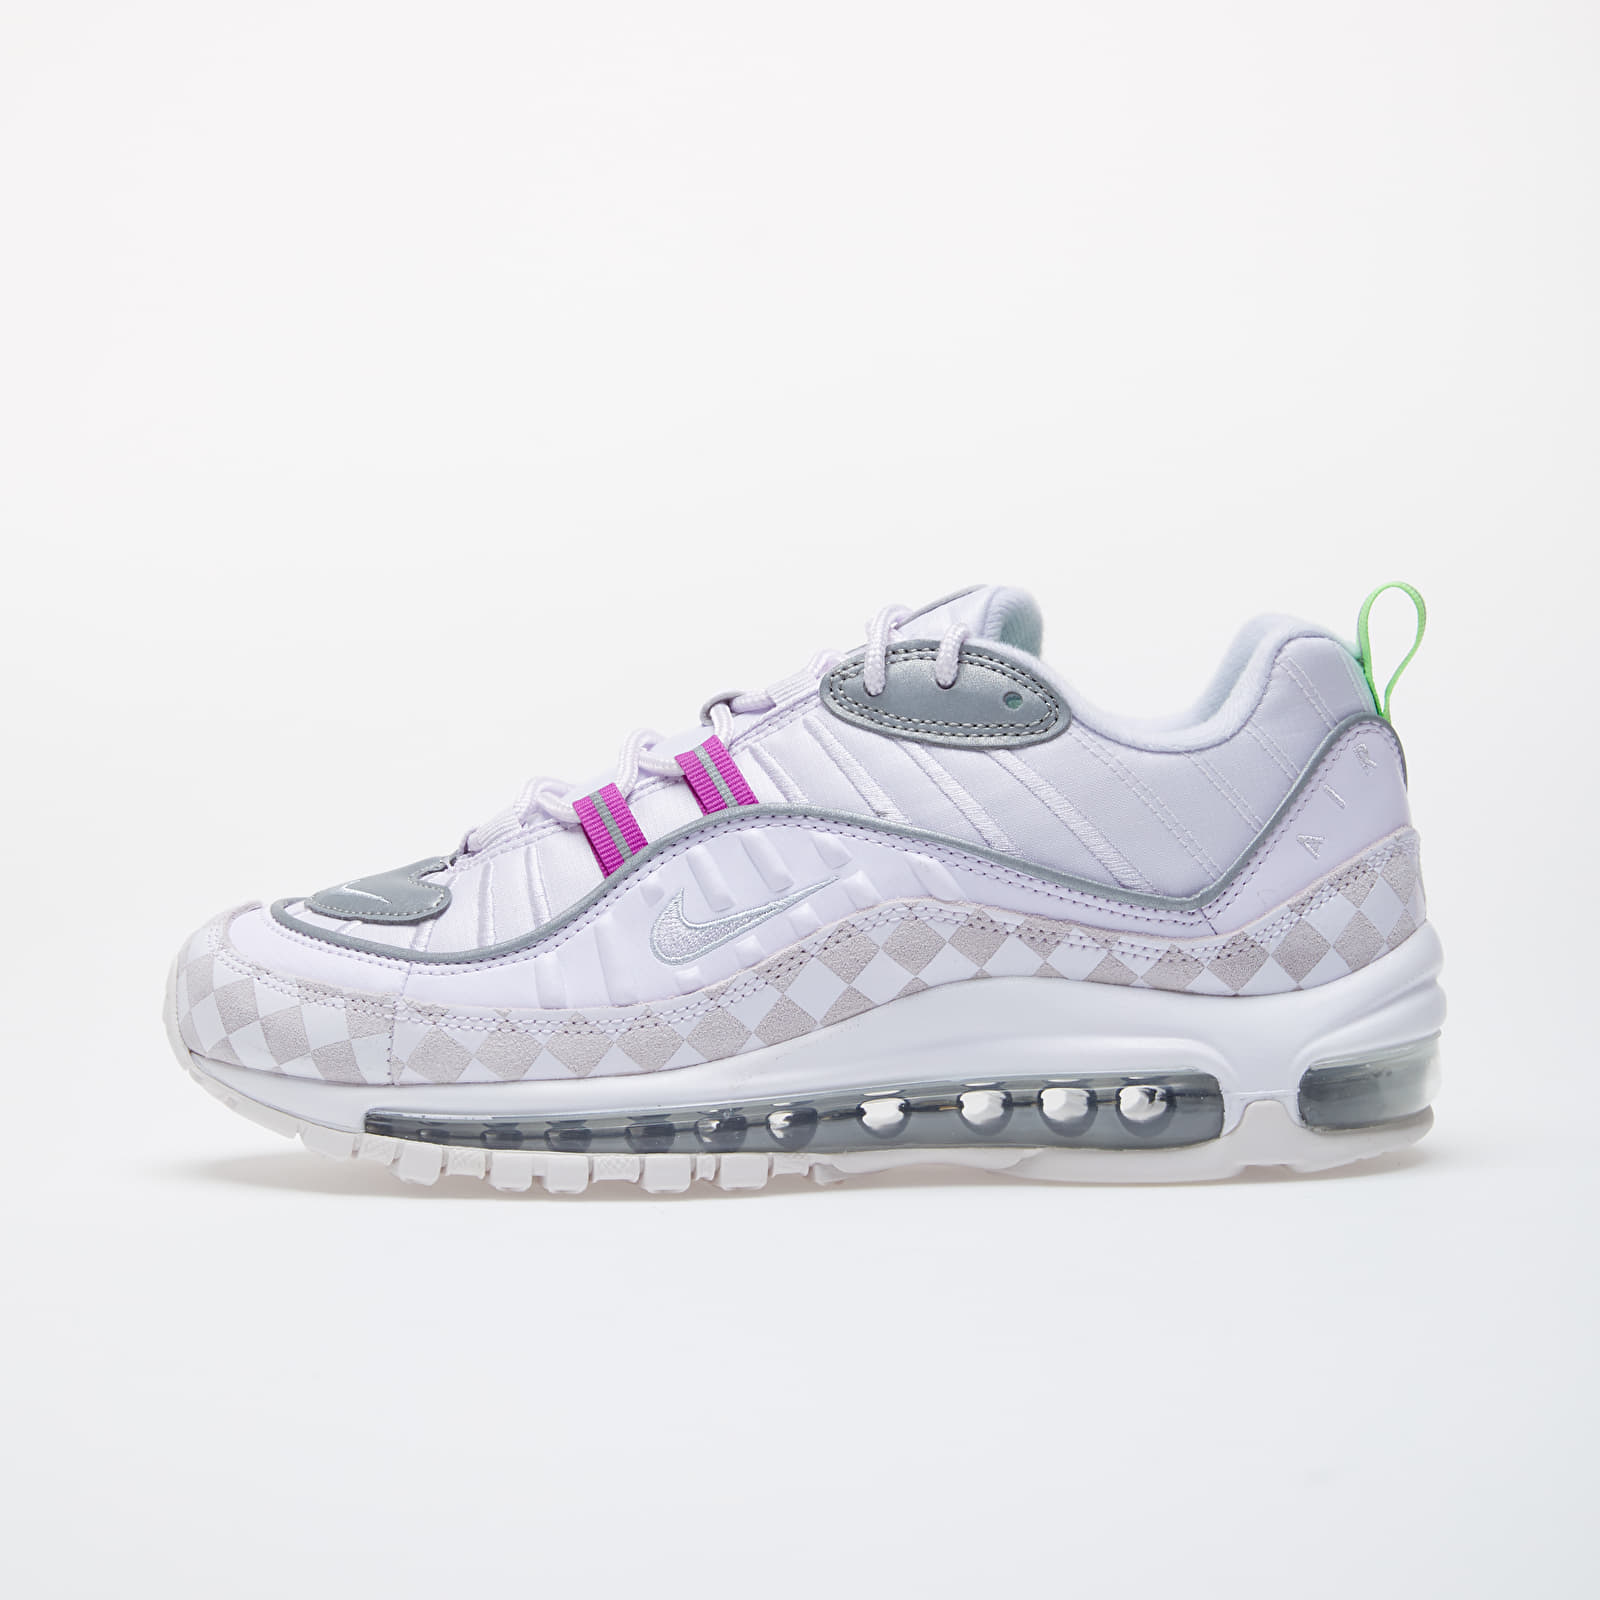 Buty damskie Nike W Air Max 98 Barely Grape/ Barely Grape